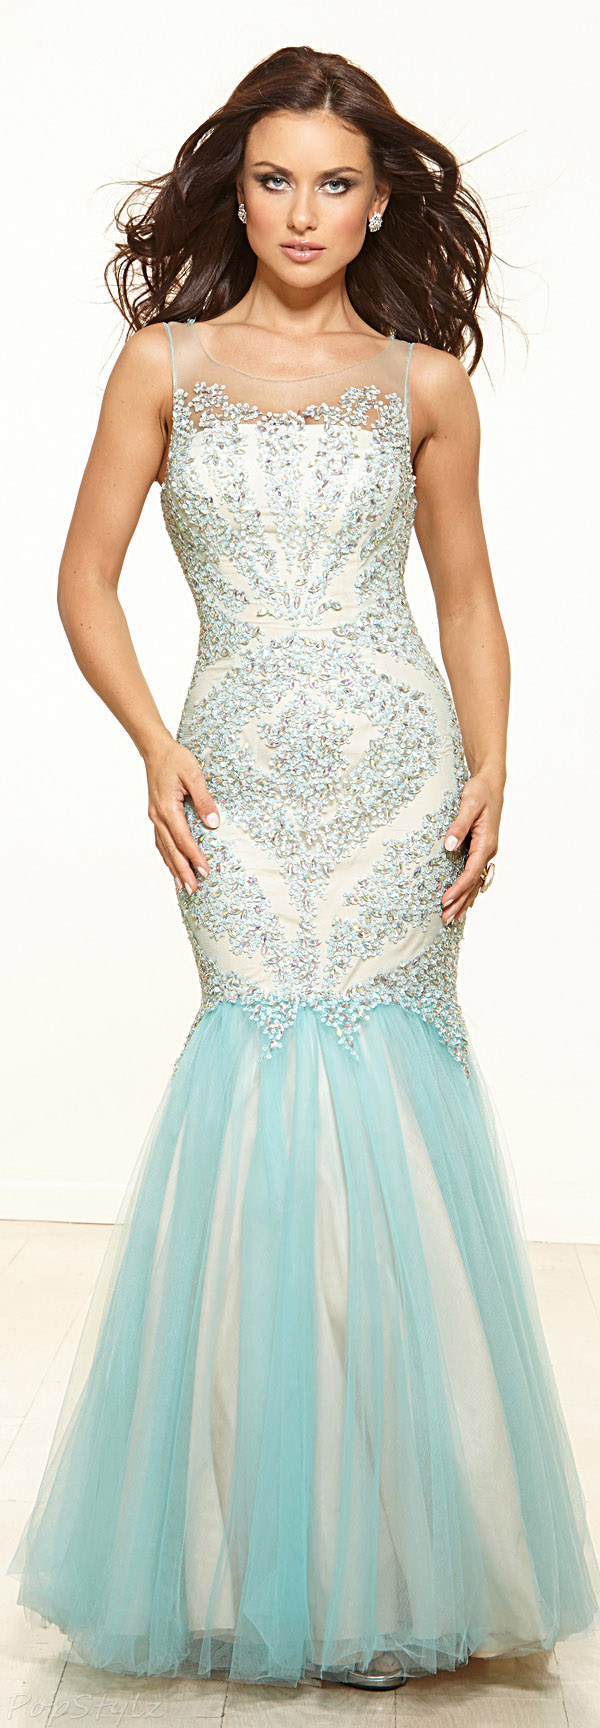 Terani Couture P3117 Evening Gown